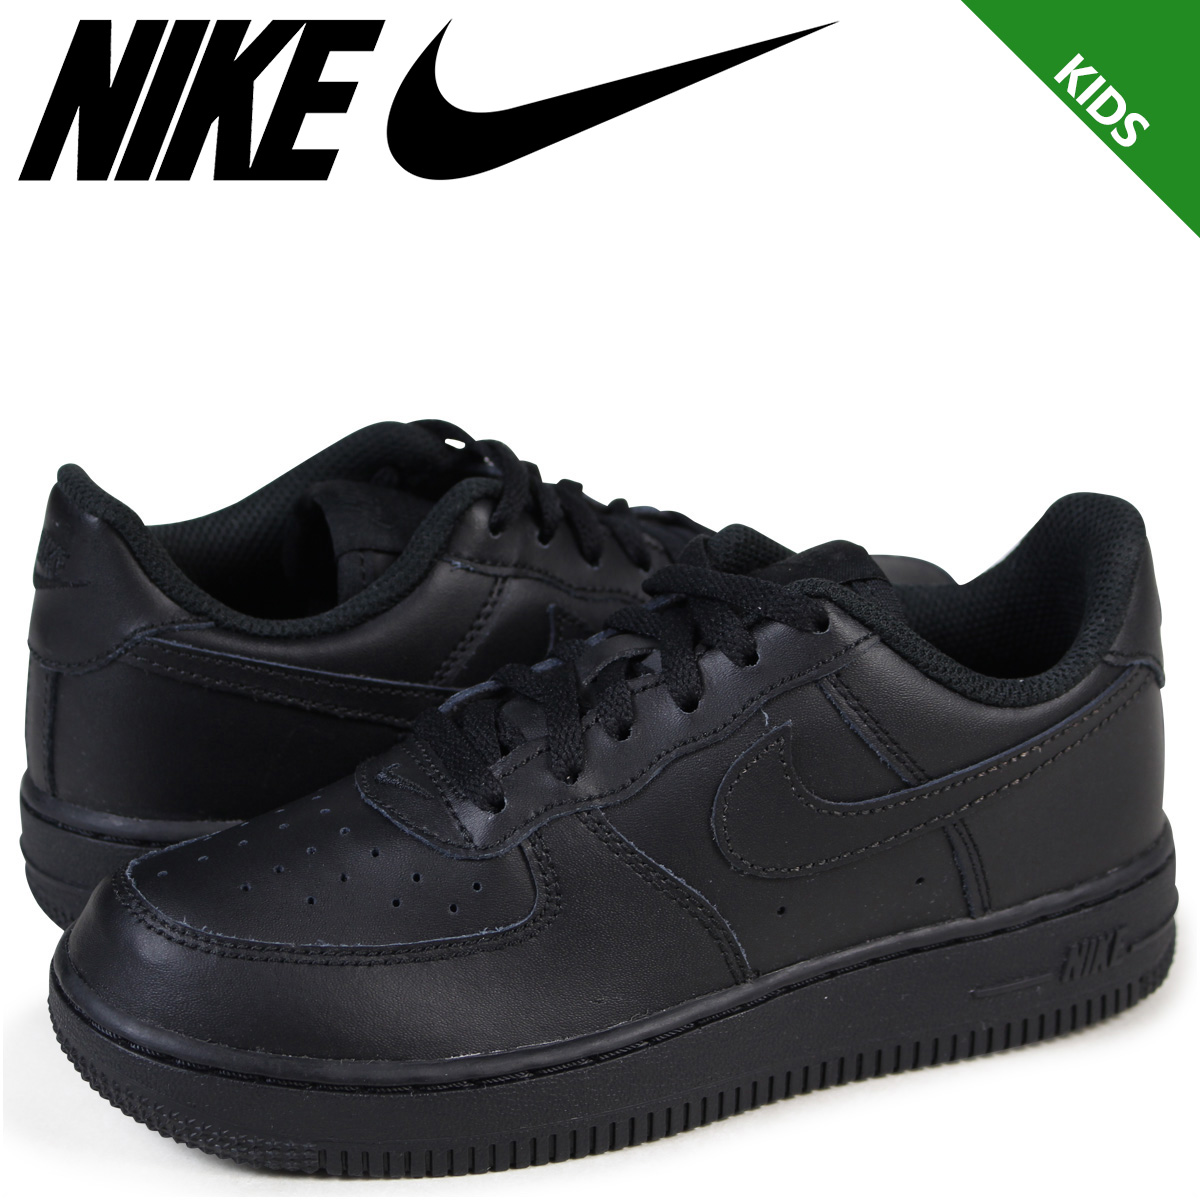 f6dc7c1a «Reservation products» «12 / 26 I will be in stock» Nike NIKE kids AIR  FORCE 1 LOW PS sneakers air force 1 Lo preschool leather junior children  PRESCHOOL ...